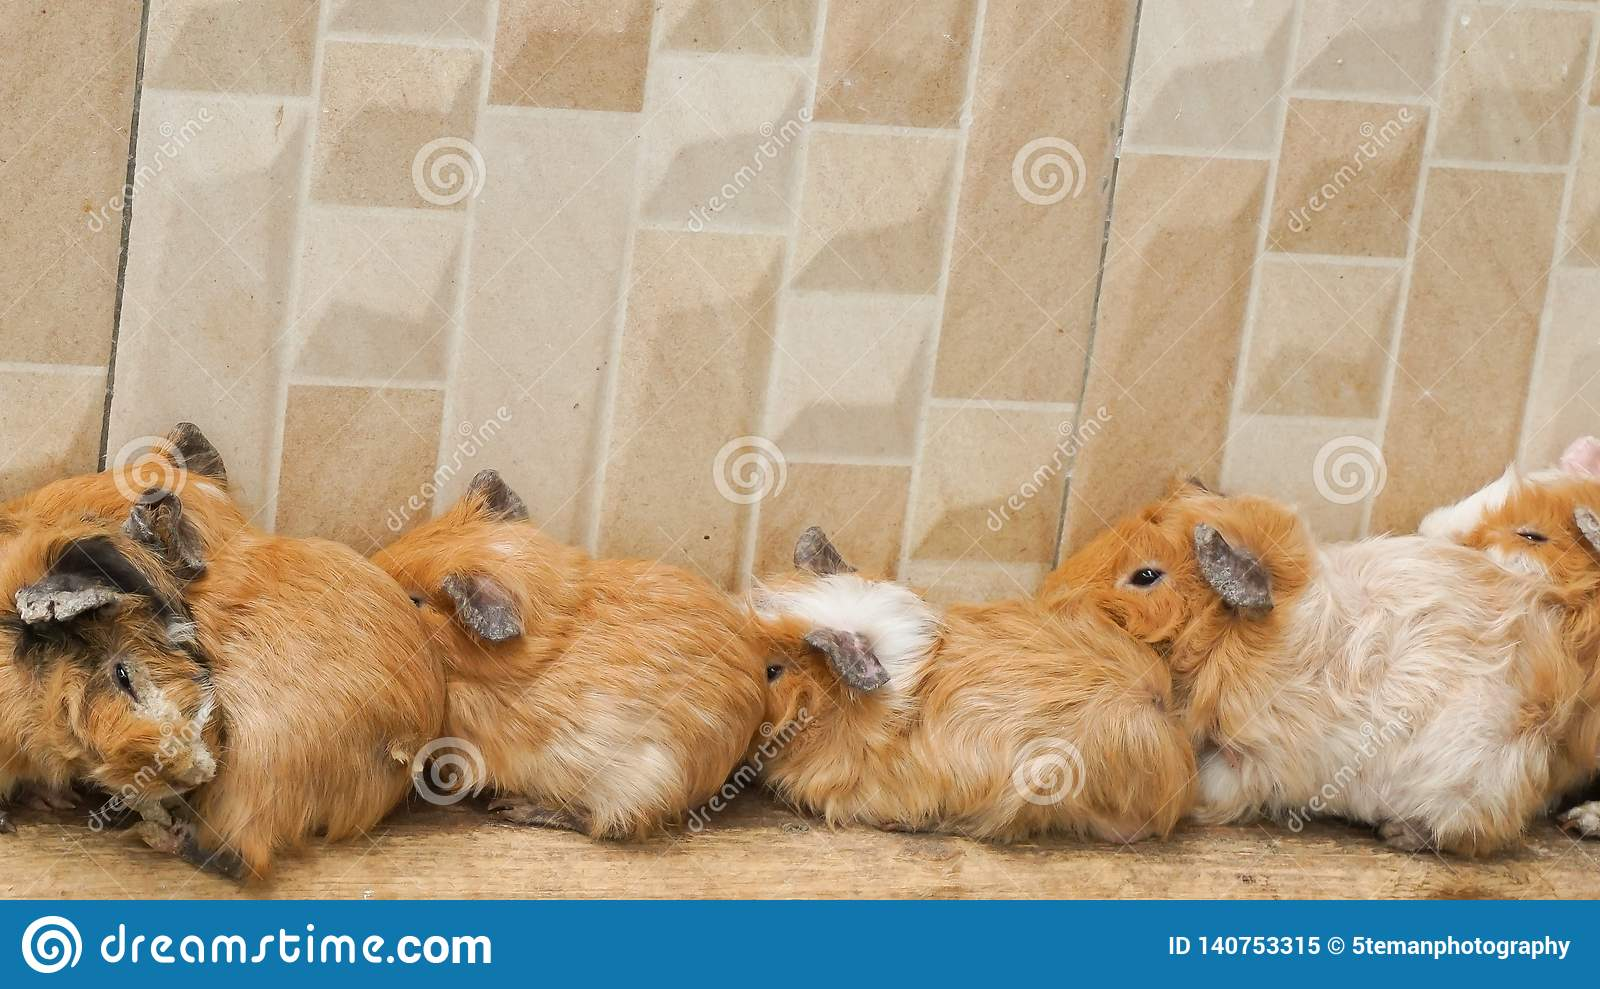 The hamsters are sleeping together near the wall